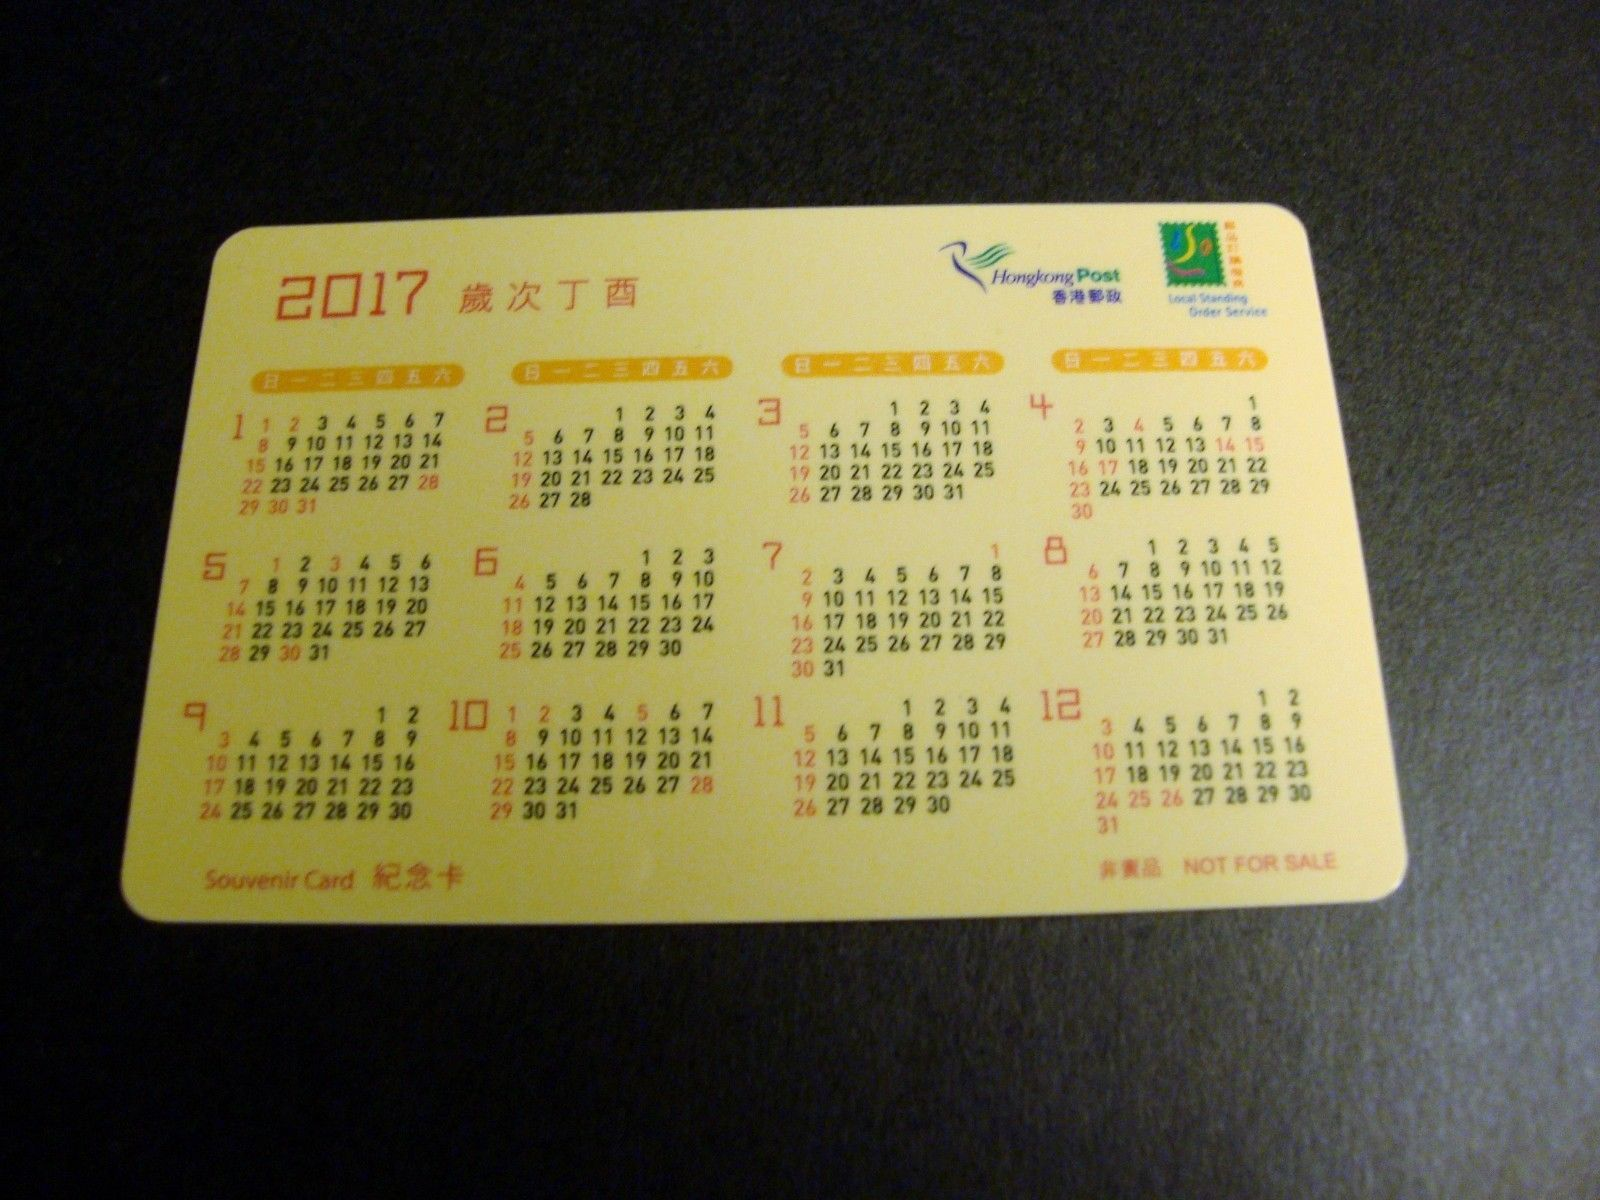 2017 Year of Rooster Hong Kong Post 1 Calendar Pocket Plastic Card